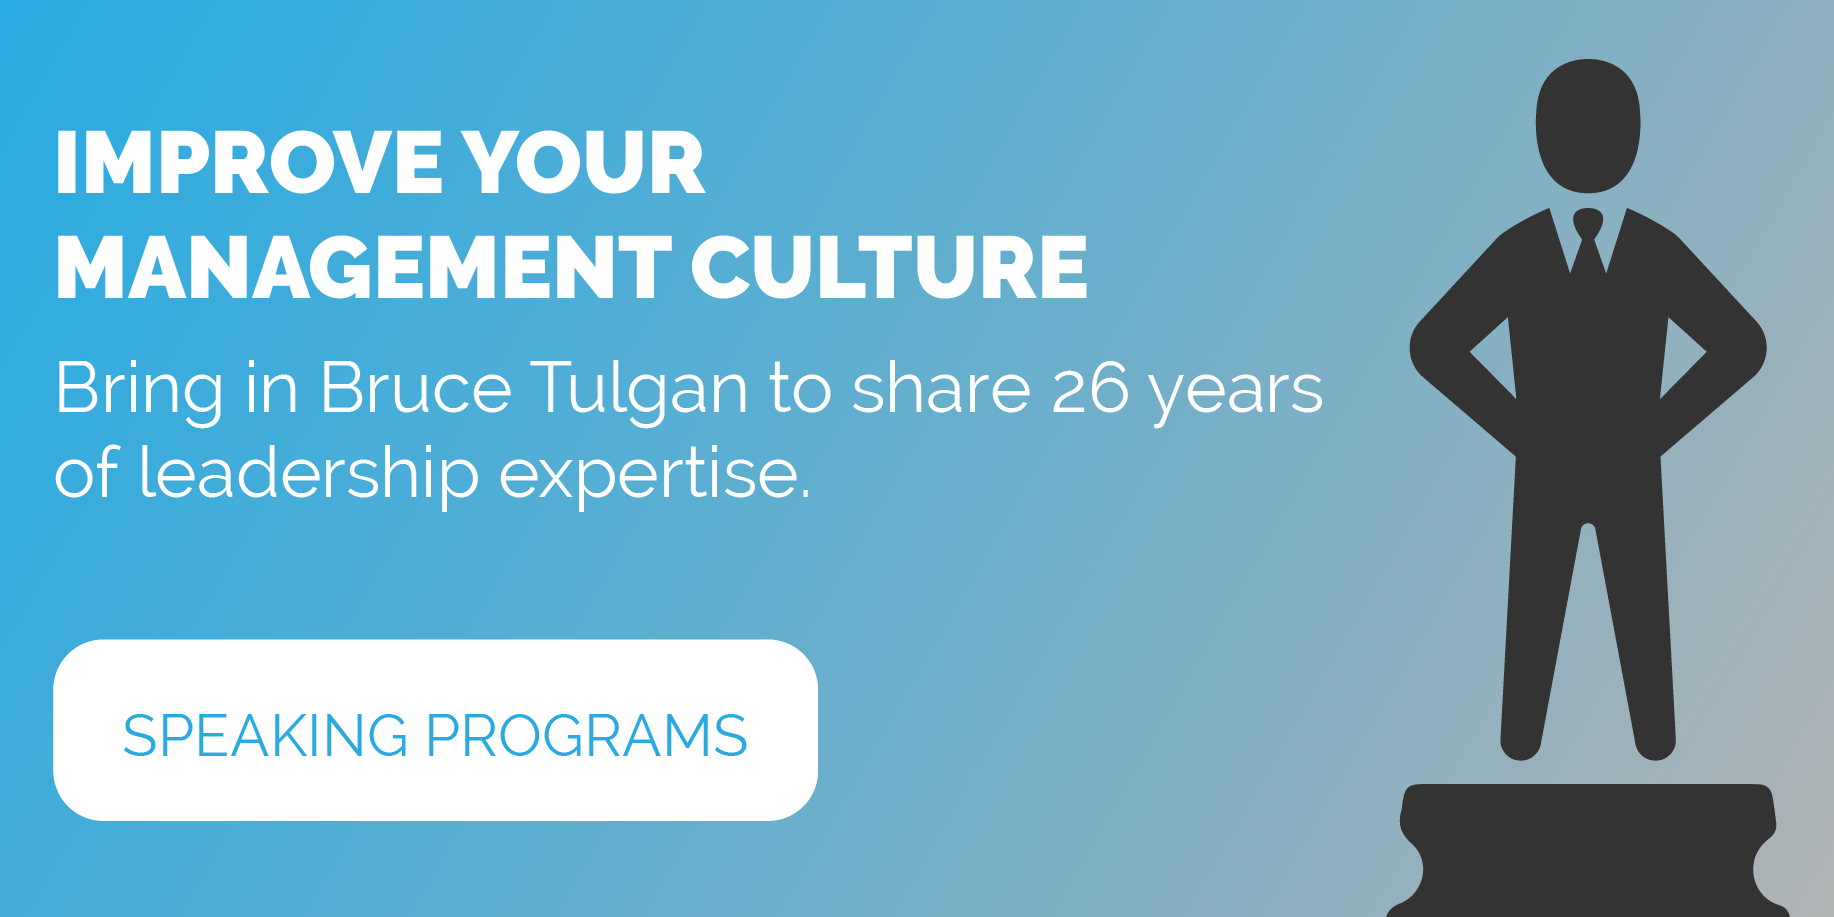 Improve Your Management Culture -- Learn more about Bruce Tulgan's speaking programs